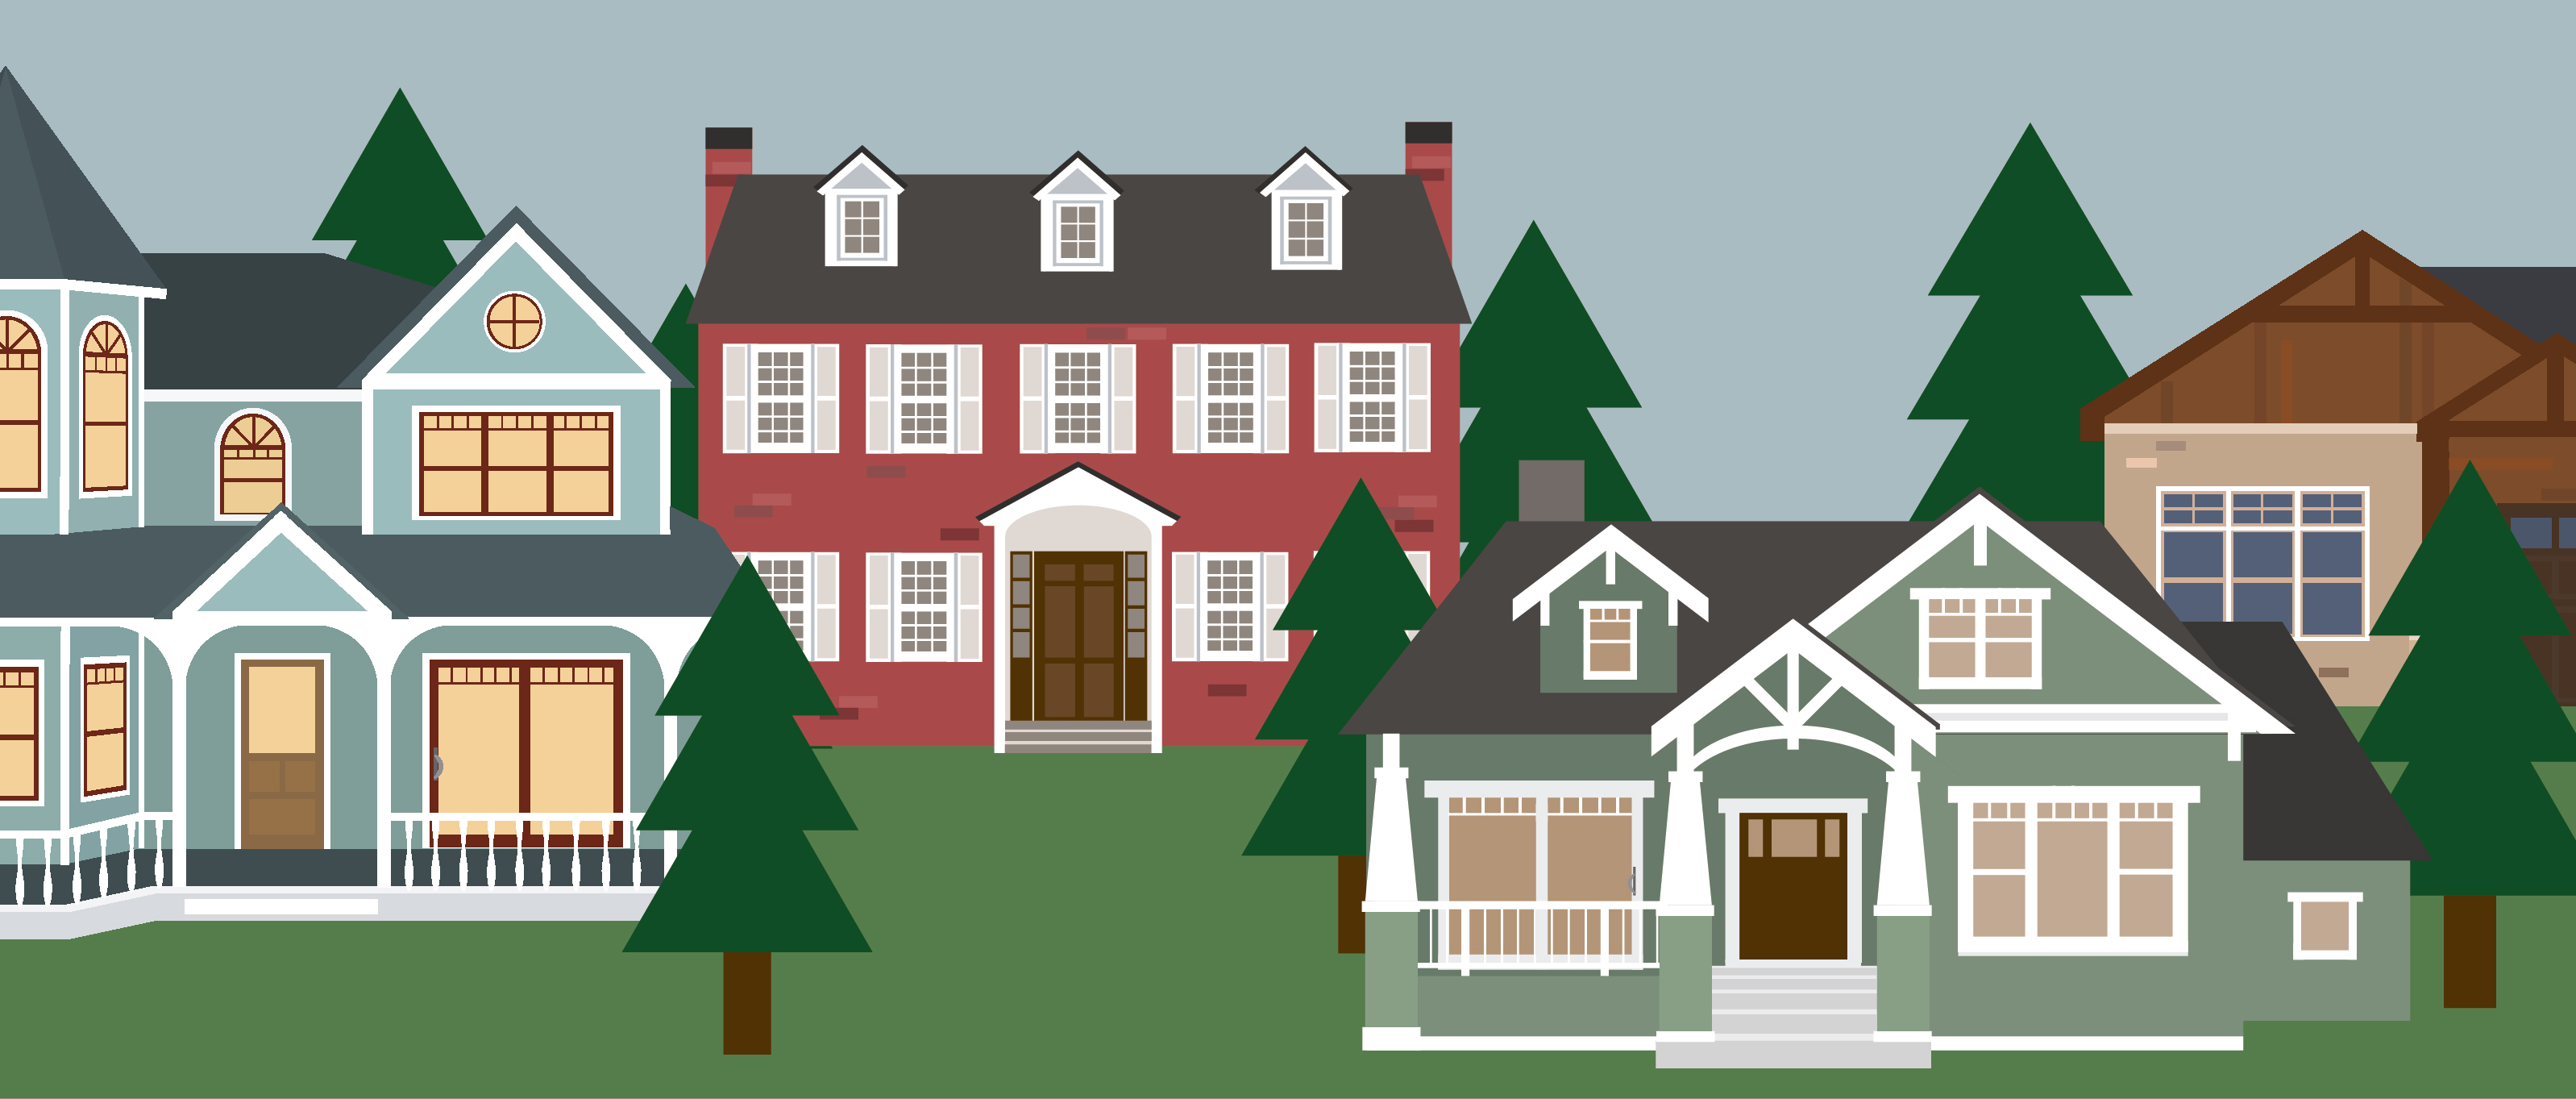 The Best Windows for the Top 9 Architectural Styles ... Queen Anne Home Plans Energy Efficient on french eclectic home plans, gothic cottage home plans, quad level home plans, queen anne floor plans, greek revival home plans, eastlake home plans, one-bedroom cottage home plans, clayton home plans, edgewood home plans, queen anne cottage plans, saltbox home plans, creole cottage home plans, rustic home plans, back split home plans, modernist home plans, queen anne building plans, french second empire home plans, cordova home plans, washington home plans, tudor house plans,